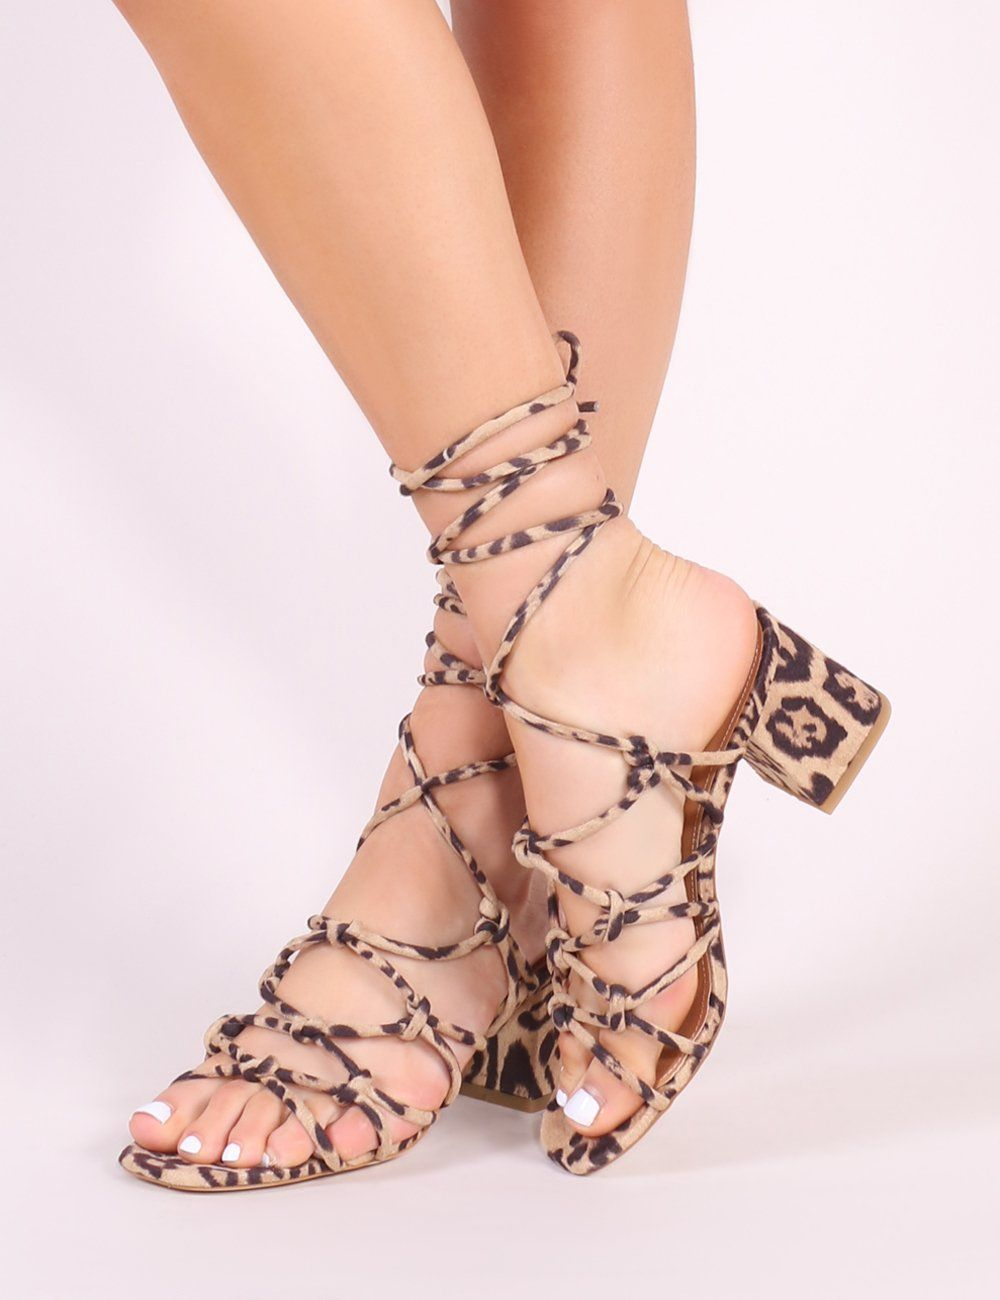 4049a9b1a8 Knot your average sandal. Featuring strappy knotted design with a low block  heel and lace up detailing. Style with casual denim or a printed swing  dress for ...